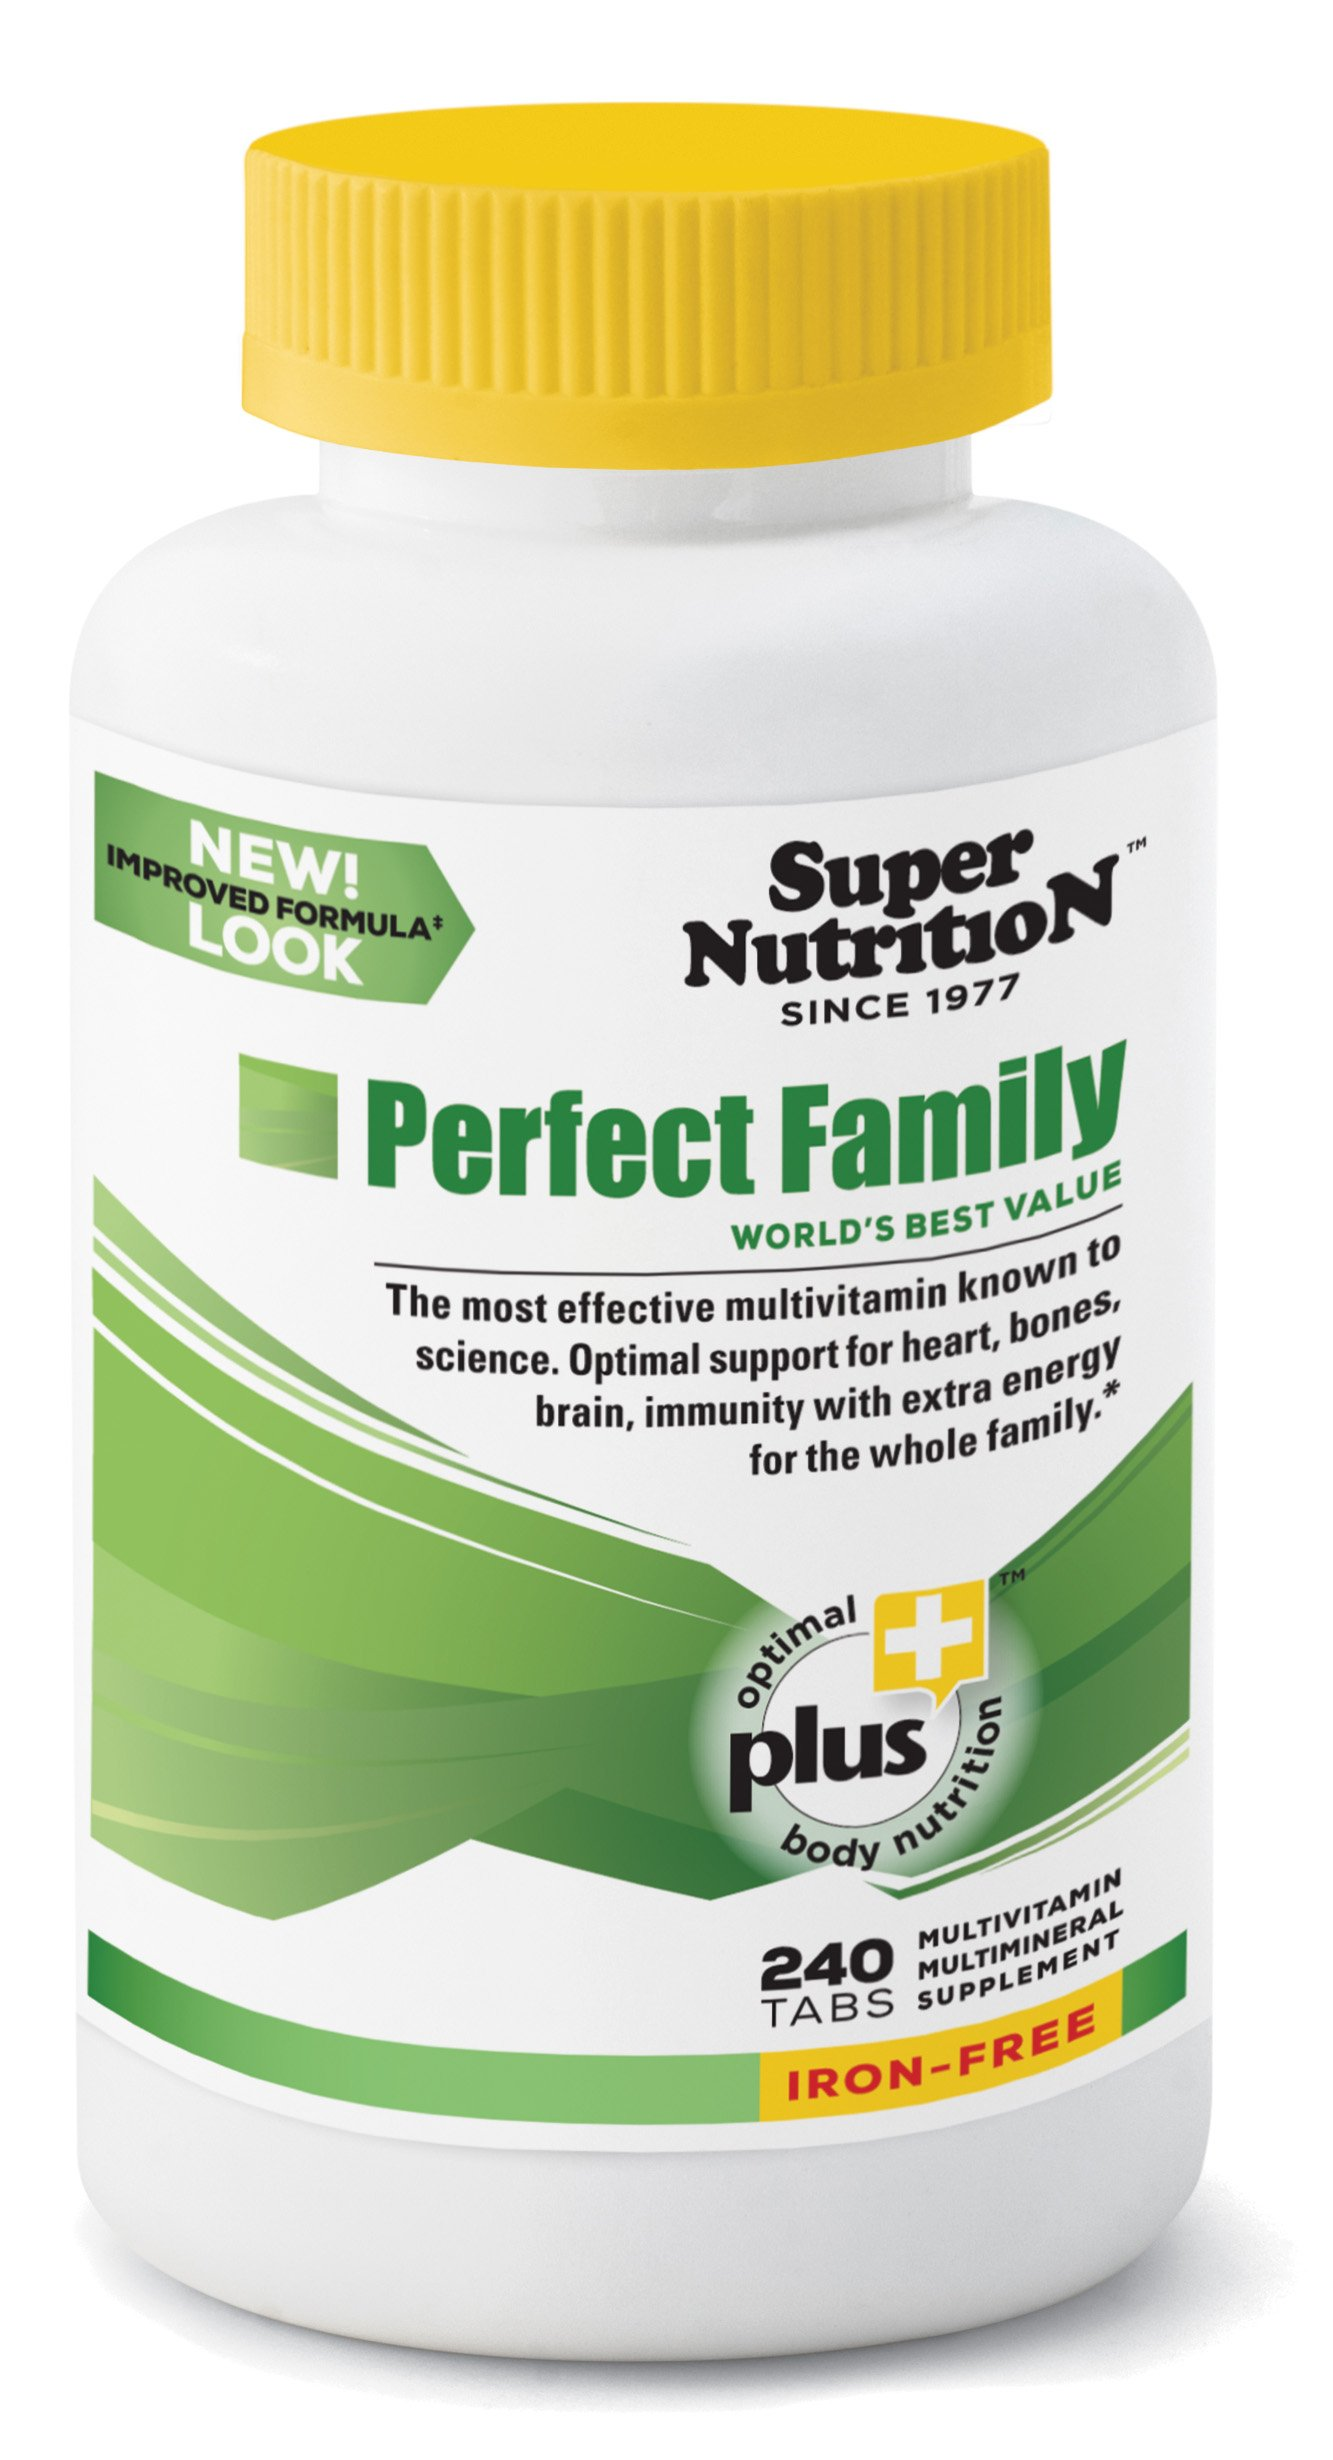 SuperNutrition Perfect Family Iron-Free Multivitamin, 240 Count